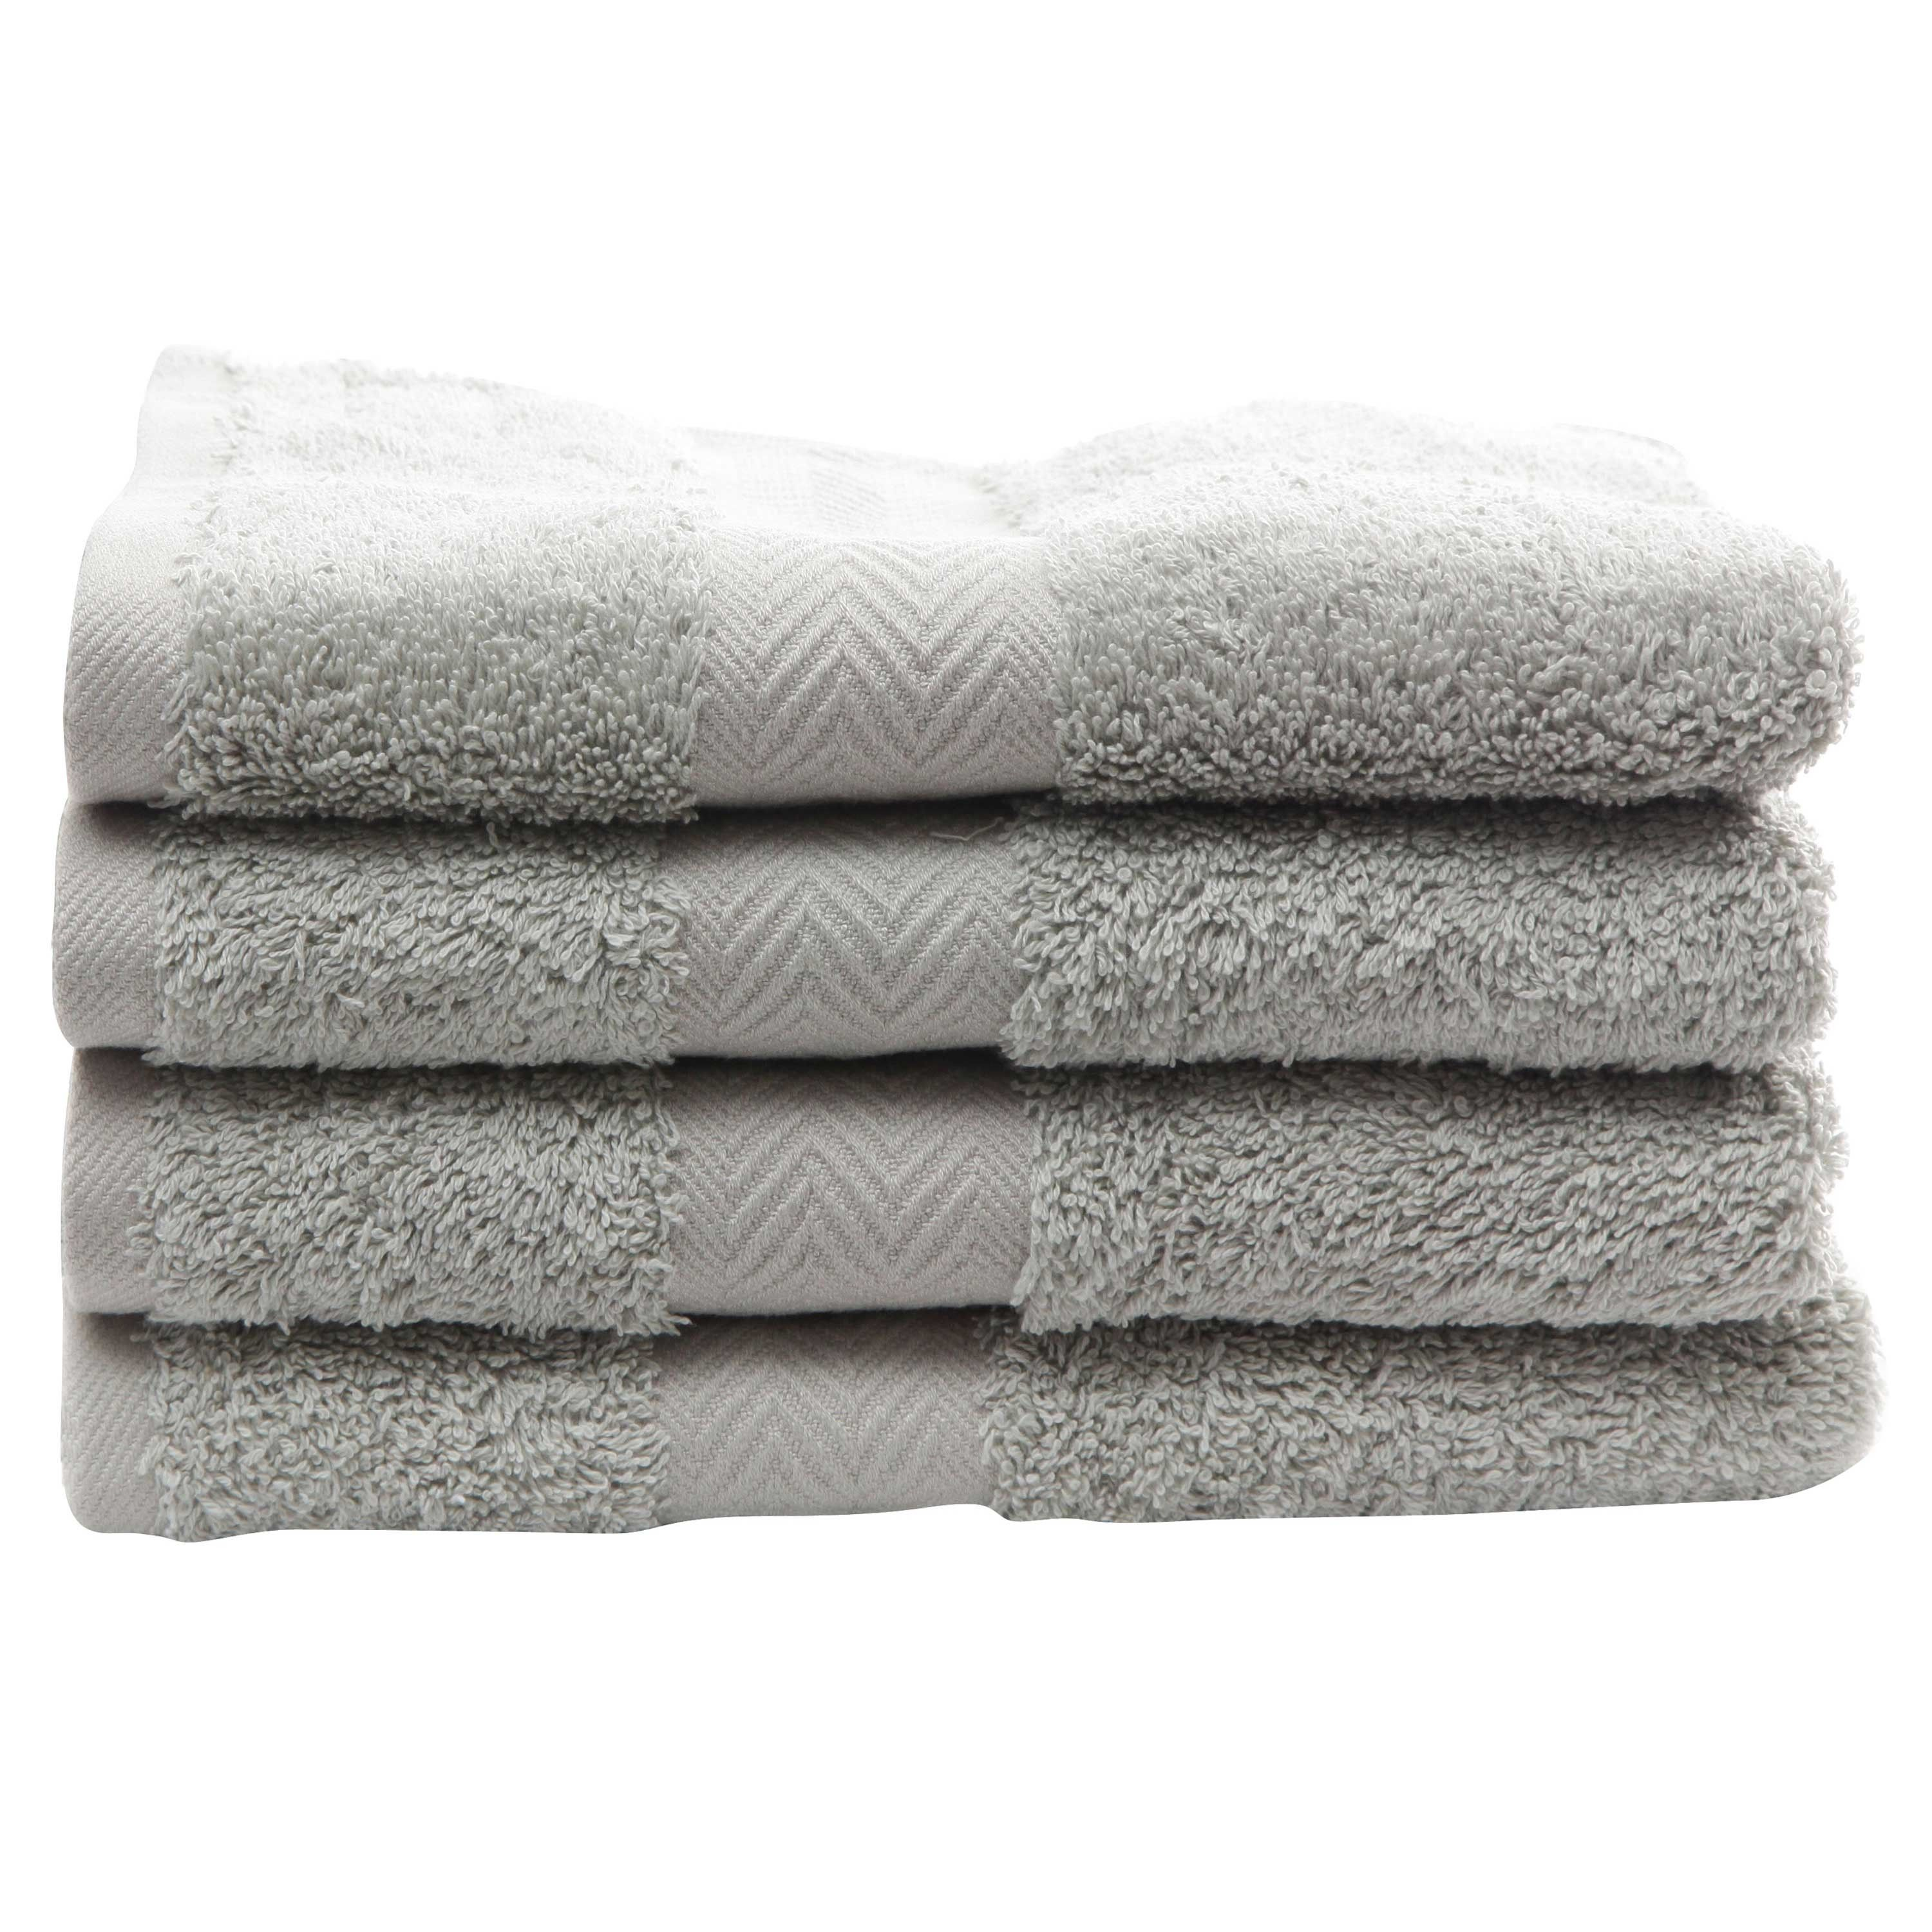 Hand Towel Hand Towels Towel Egyptian Cotton Towels